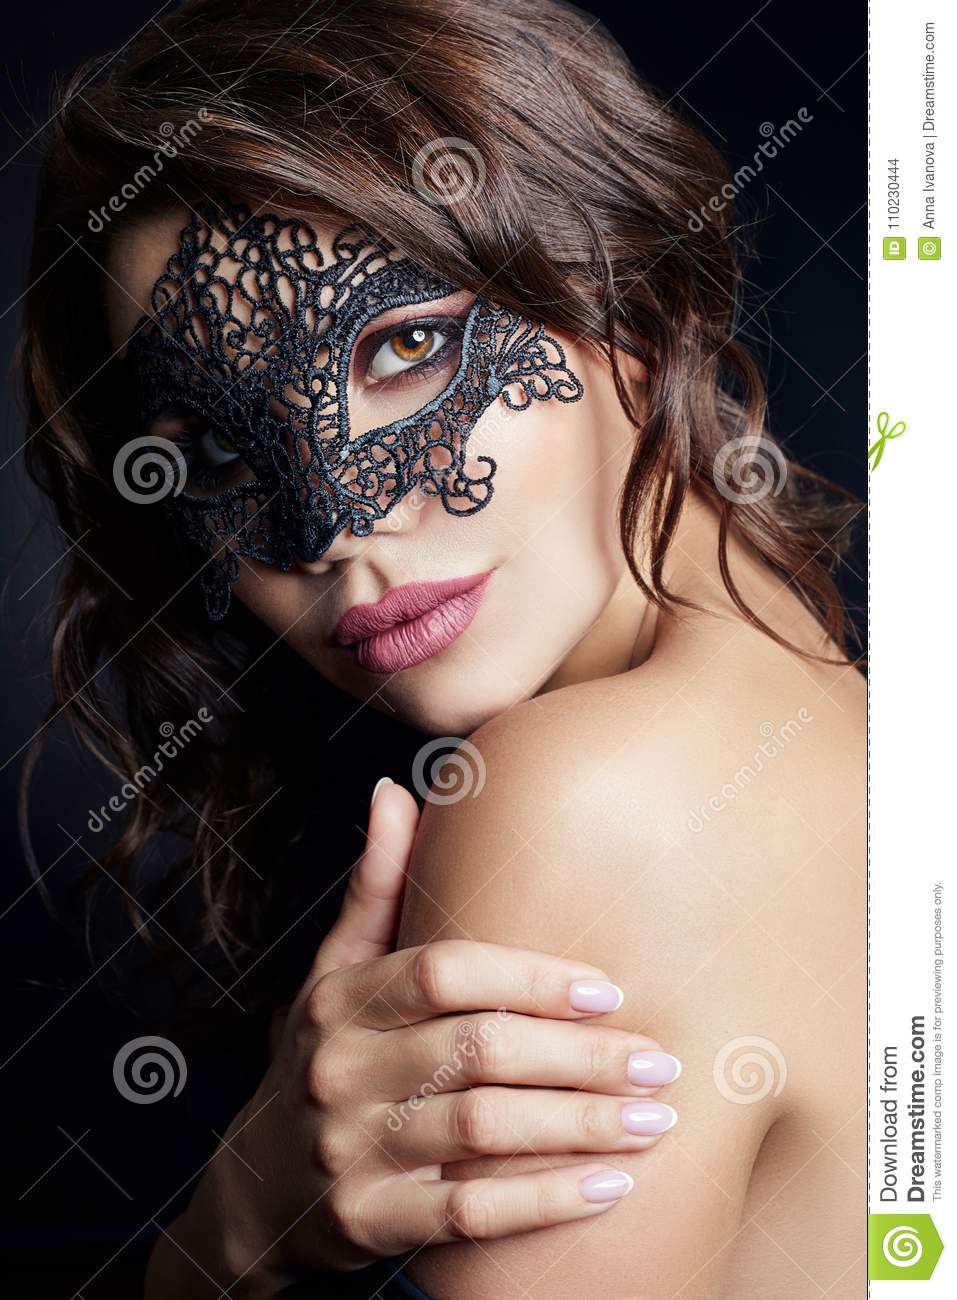 Mysterious girl in a black mask, masquerade. Nude brunette